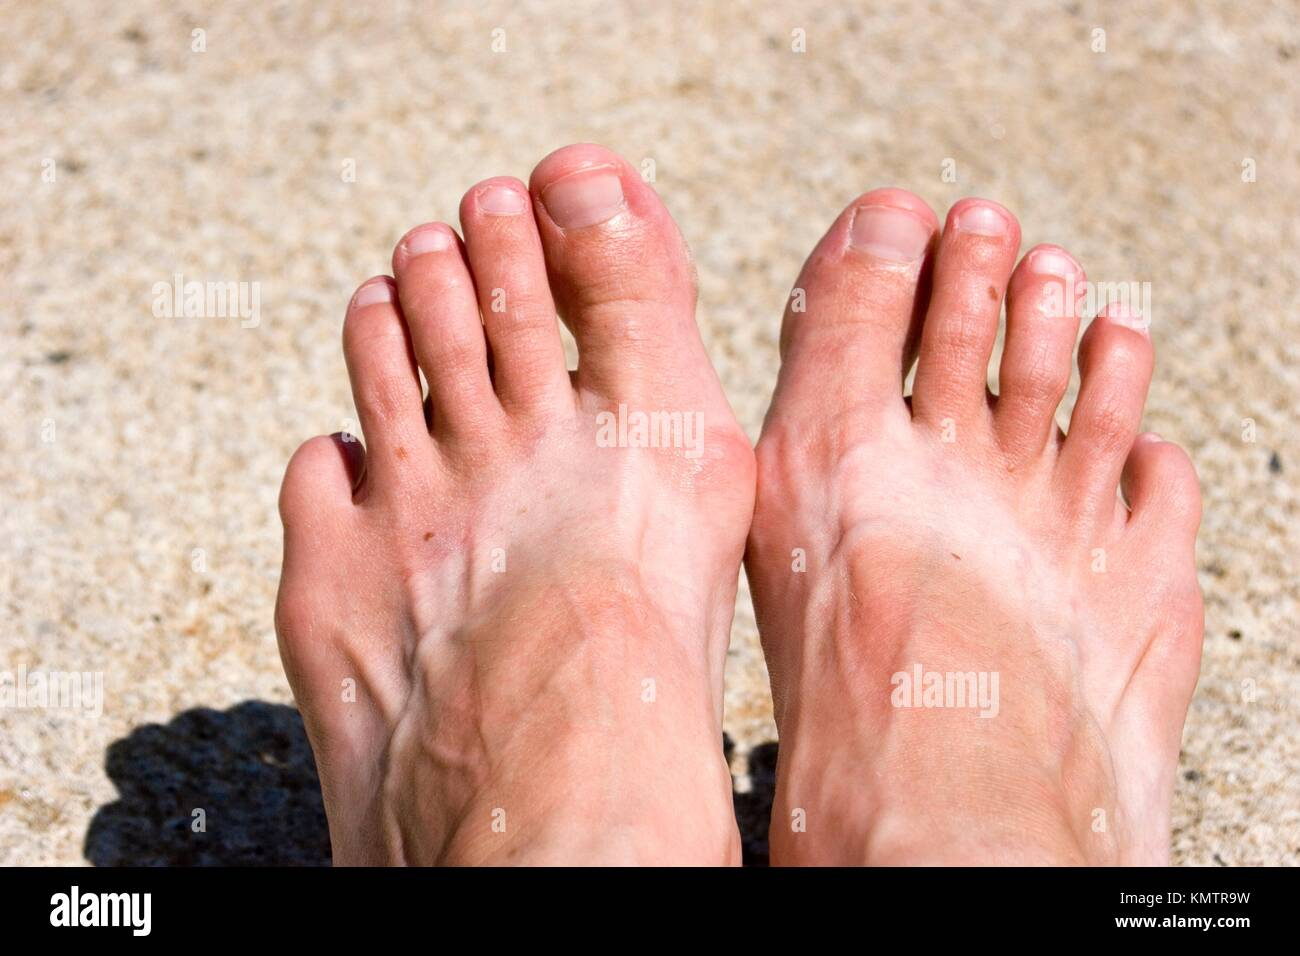 b35686e06edc9 Tan lines after wearing flip flops an entire summer Stock Photo ...